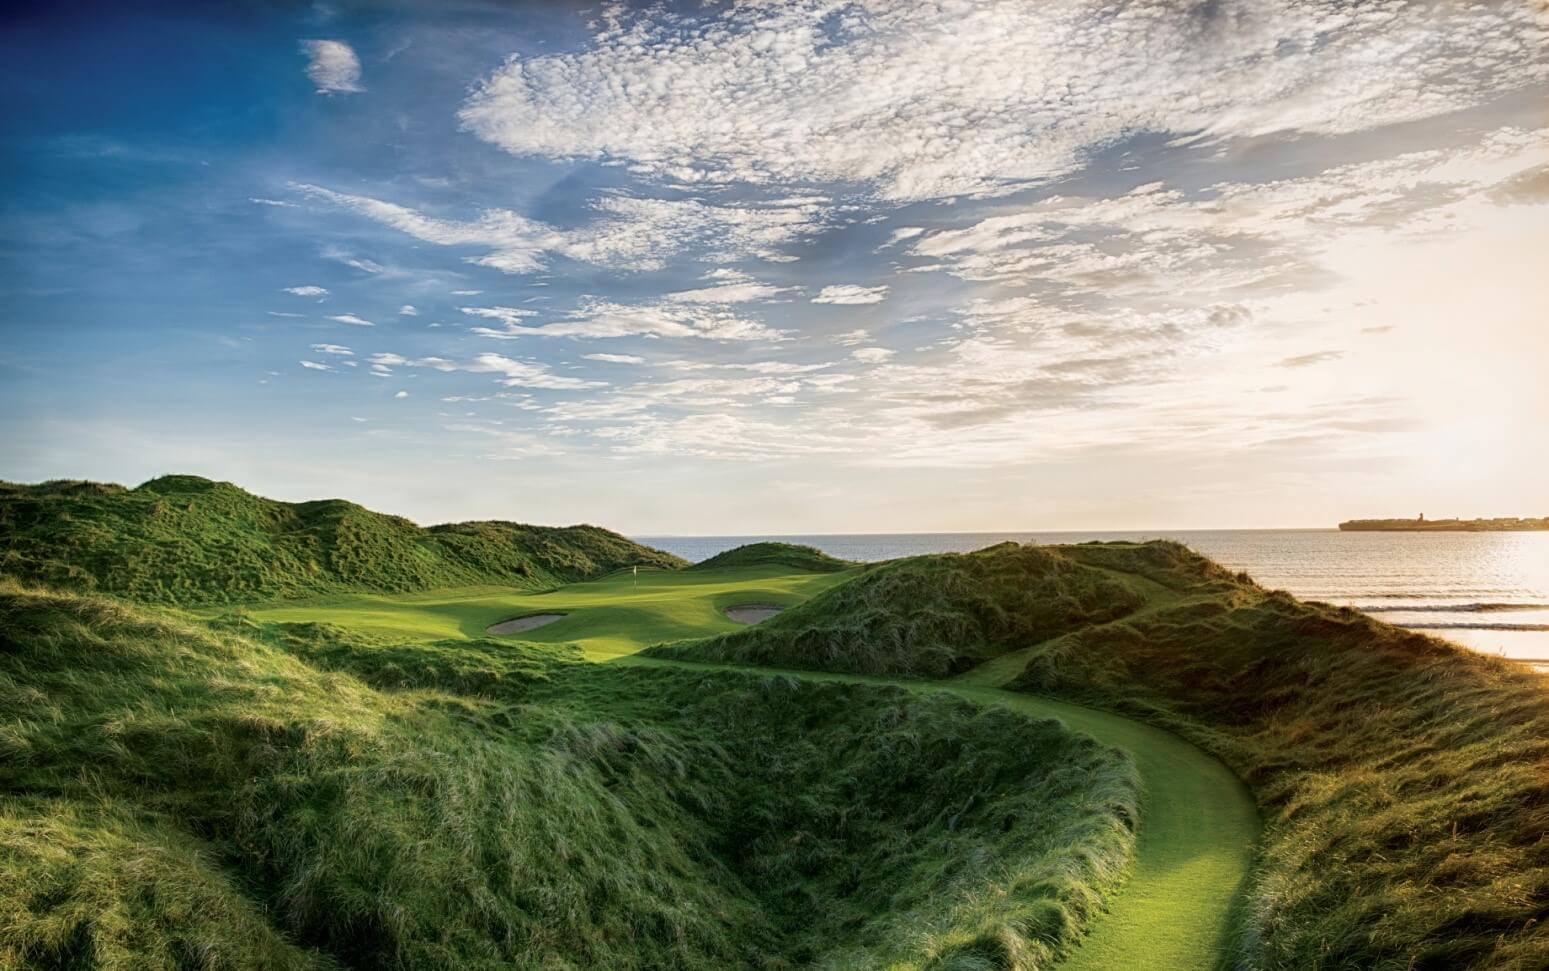 Ireland's best 100 golf courses feature many along the Wild Atlantic Way - Atlantic Way Golf Tours